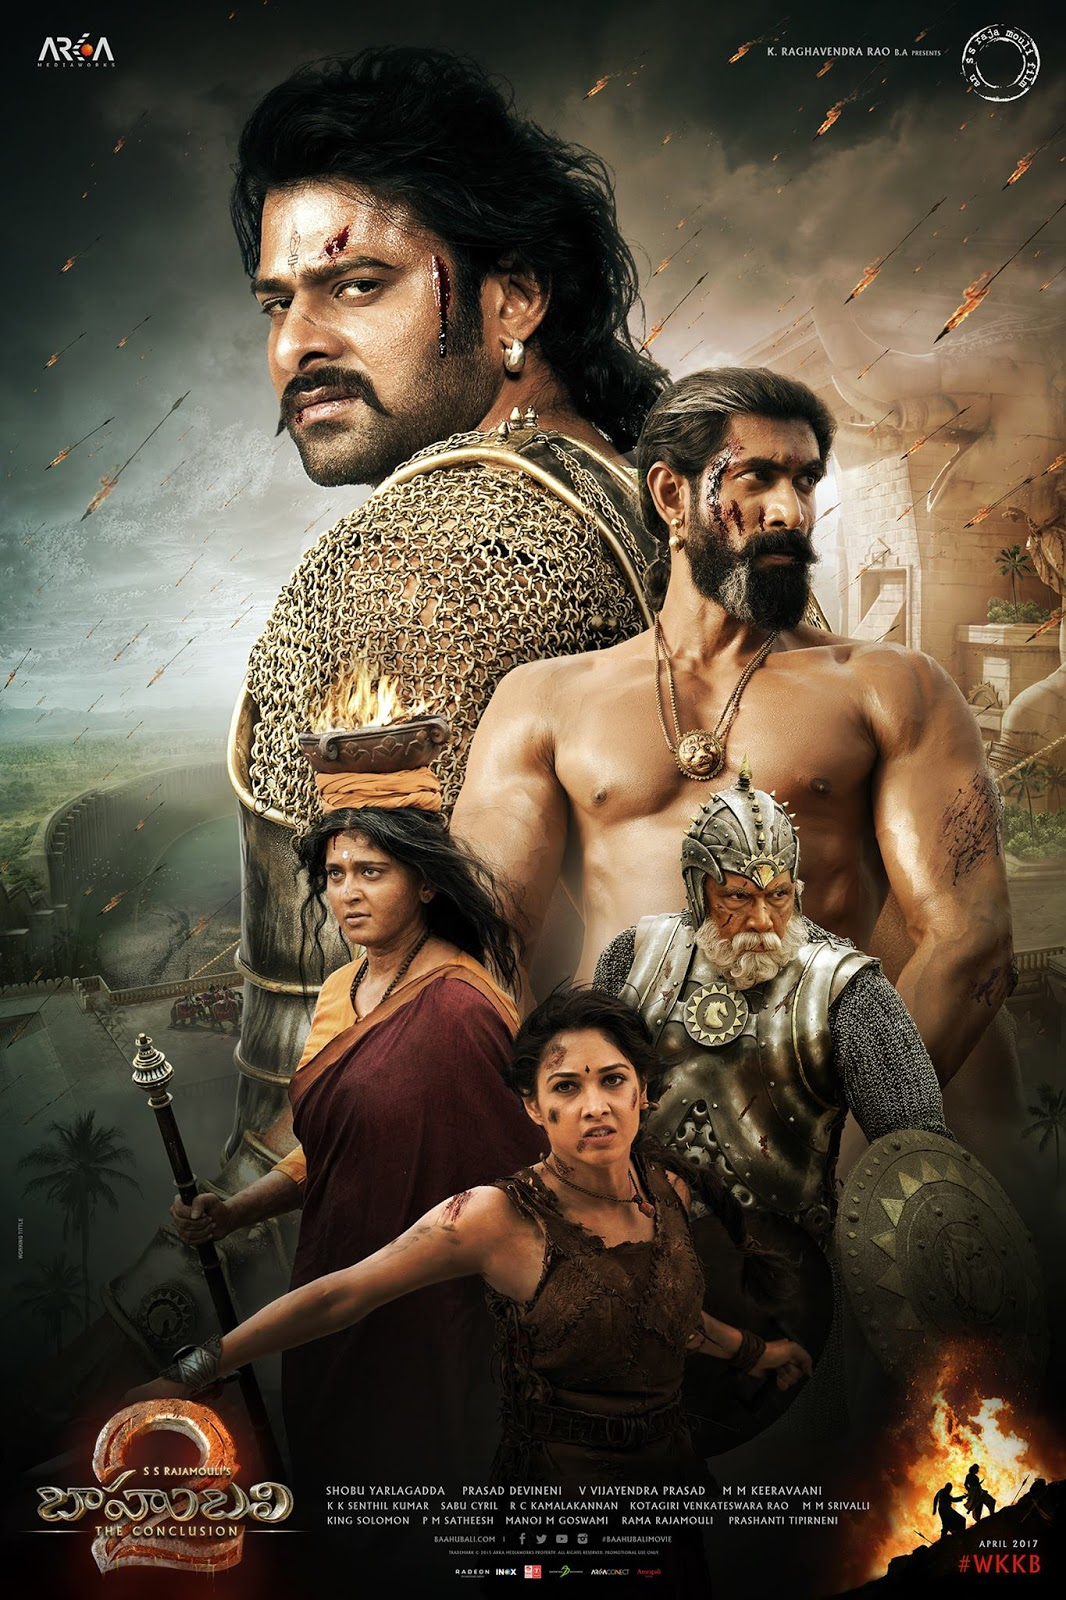 Wallpaper download bahubali 2 - Prabhas_latest_still Bahubali_final_part_poster